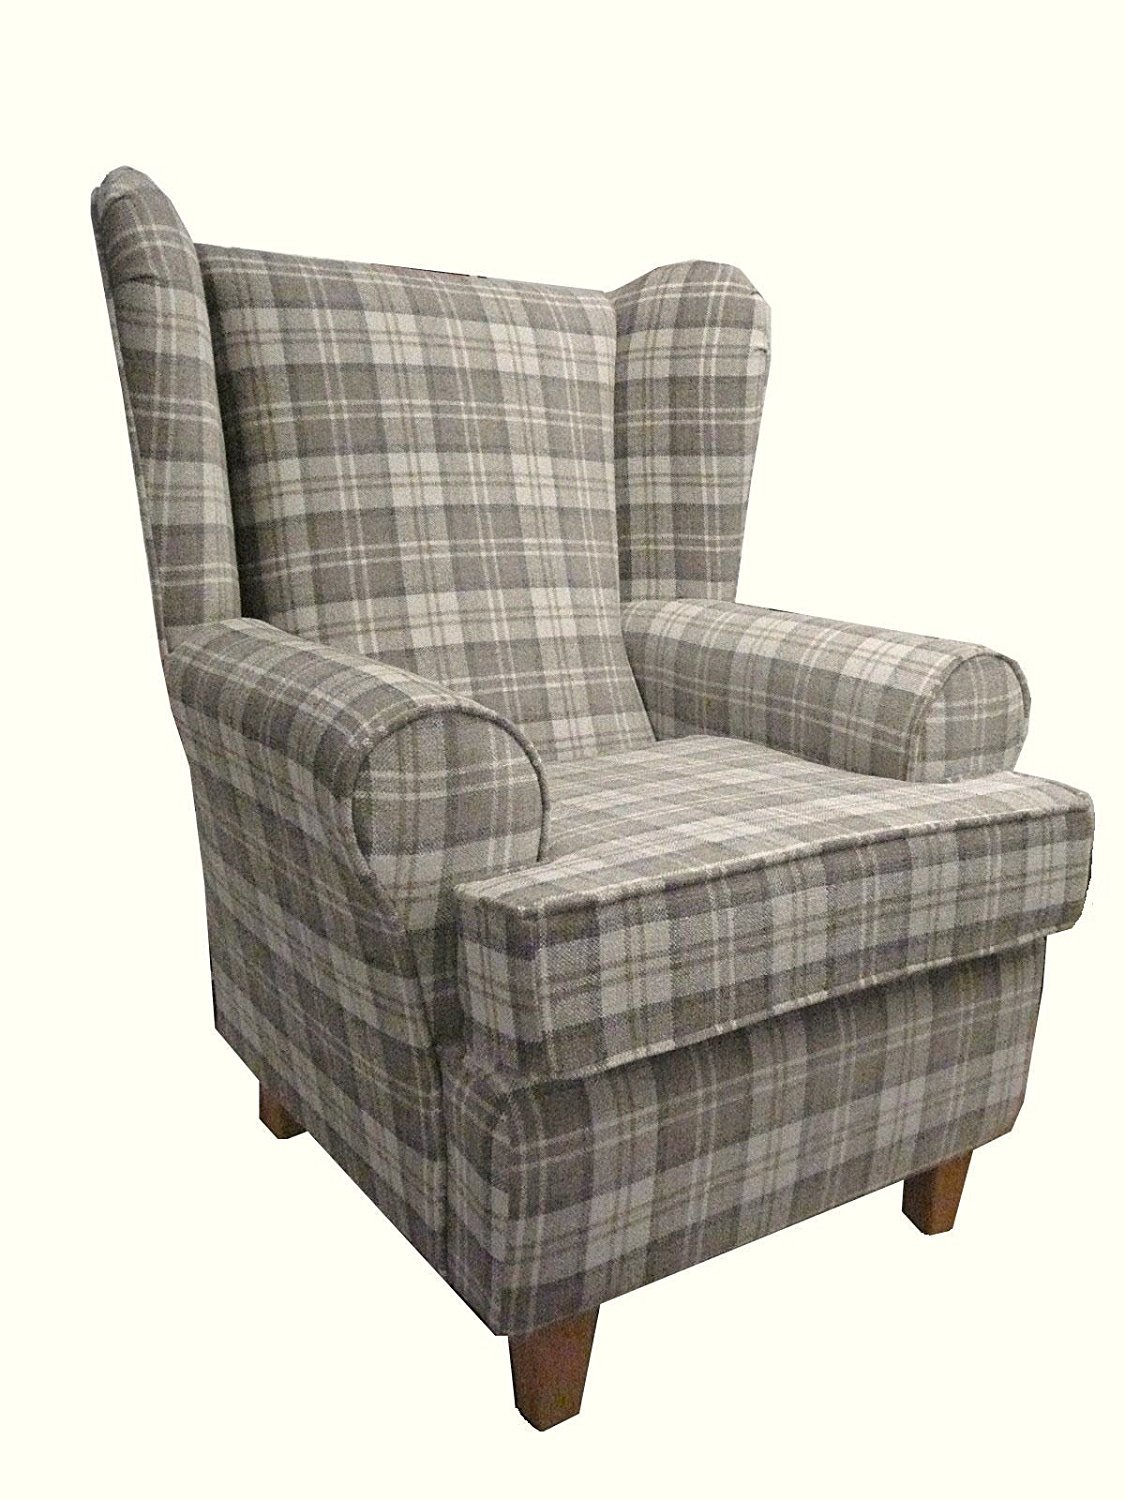 Latte Tartan Fabric Queen Anne With a Deep Base design And A